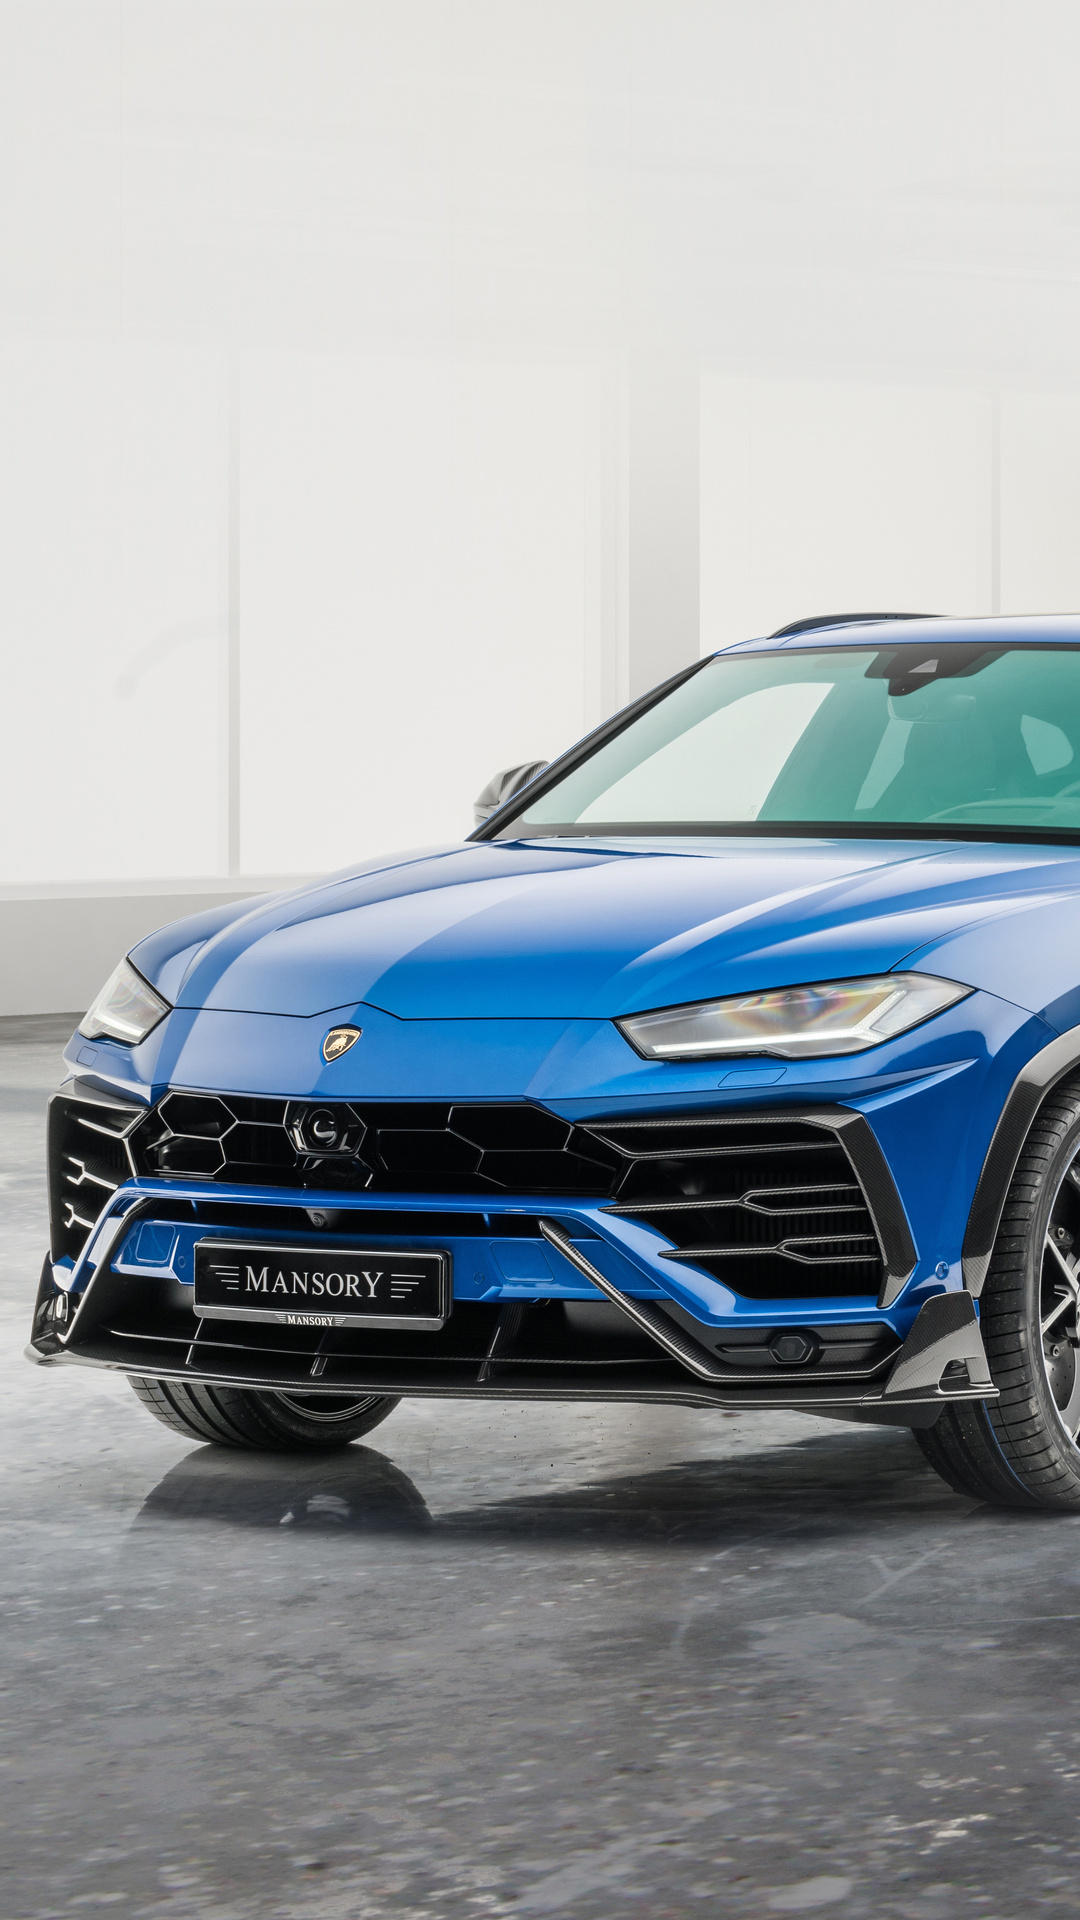 1080x1920 Mansory Lamborghini Urus Soft Kit 8k Iphone 7 6s 6 Plus Pixel Xl One Plus 3 3t 5 Hd 4k Wallpapers Images Backgrounds Photos And Pictures